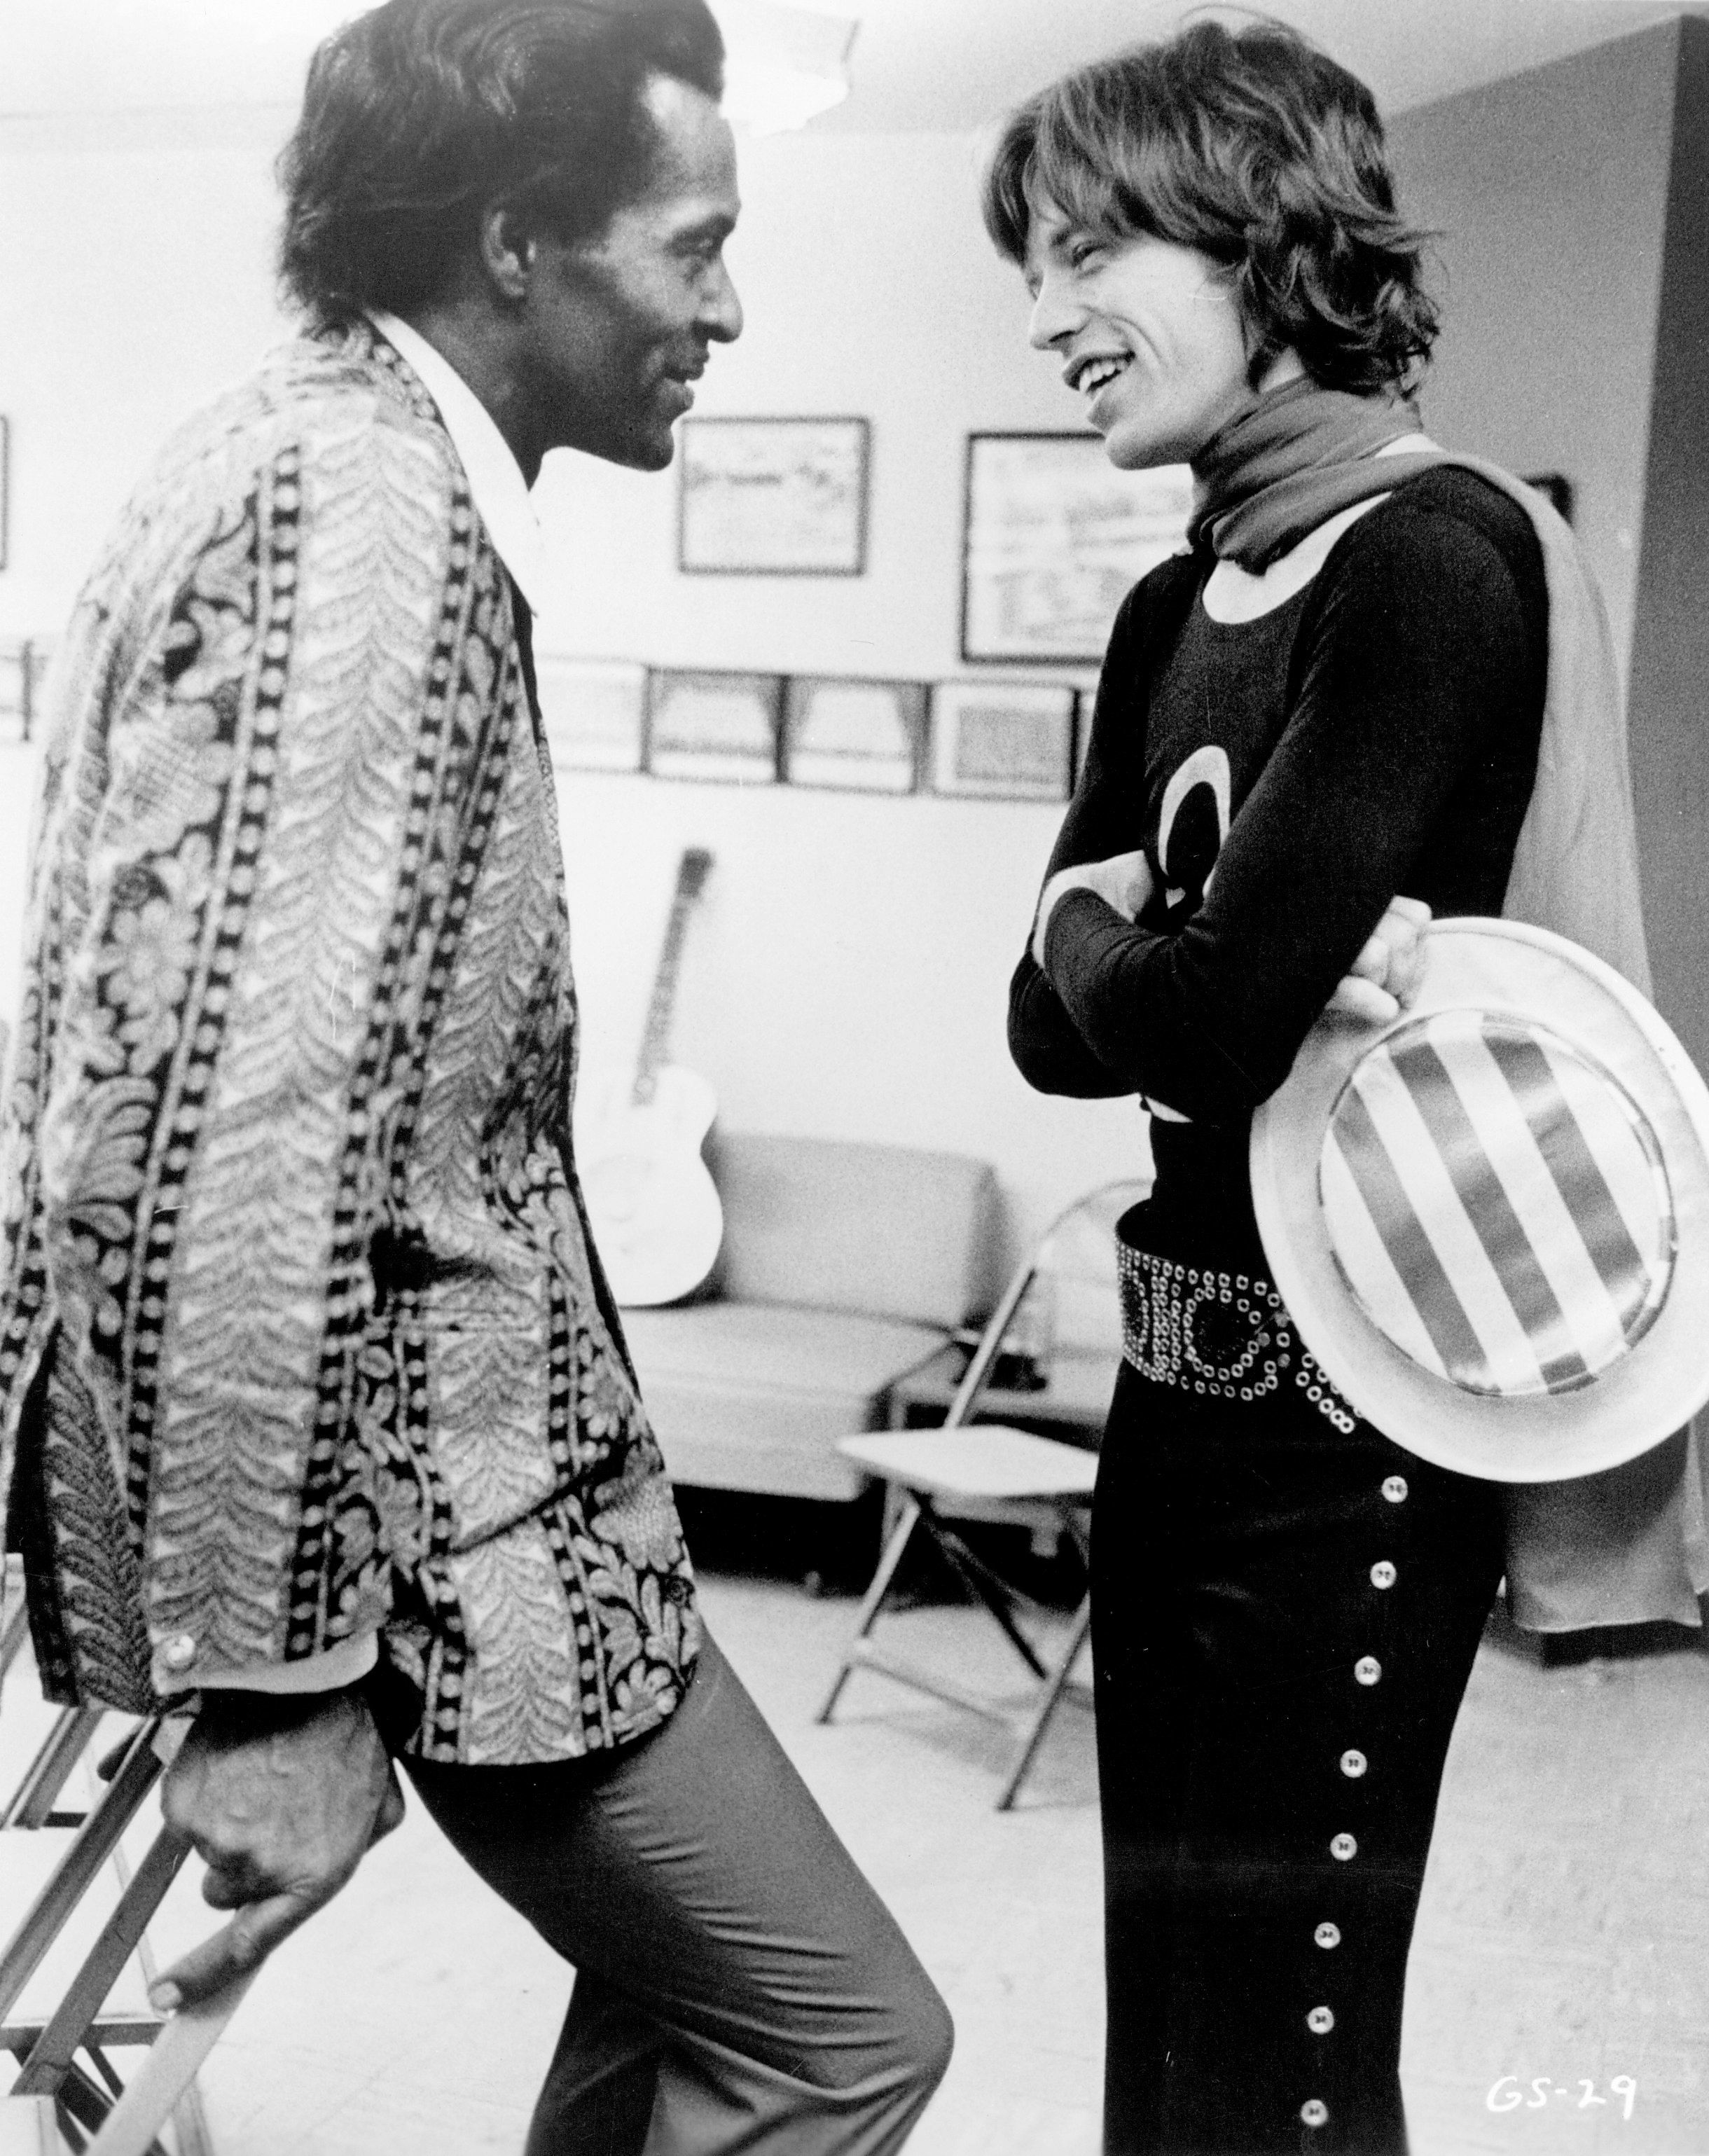 NEW YORK - NOVEMBER 28:  Mick Jagger of the rock and roll band 'The Rolling Stones'  chats backstage with Chuck Berry at Madison Square Garden in a concert that was recorded and later released as the live album 'Get Yer Ya-Ya's Out' and also as part of the film 'Gimme Shelter' on November 28, 1969 in New York City, New York. (Photo by Michael Ochs Archives/Getty Images)